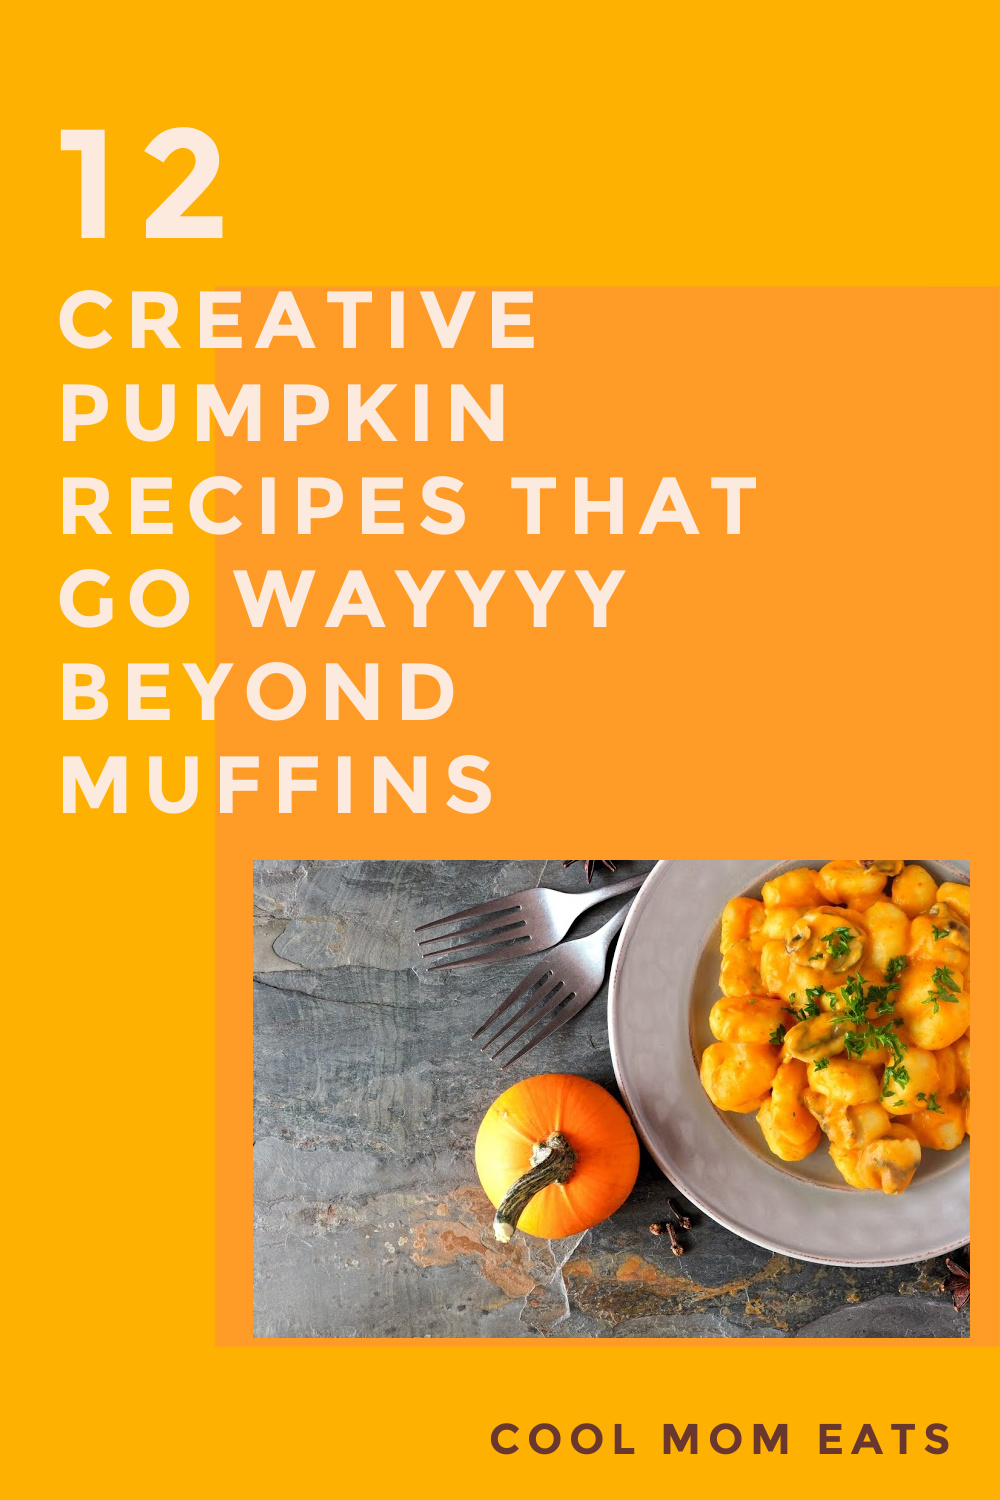 12 creative pumpkin recipes for fall: From breakfast to dinner to dessert. It's not just muffins!